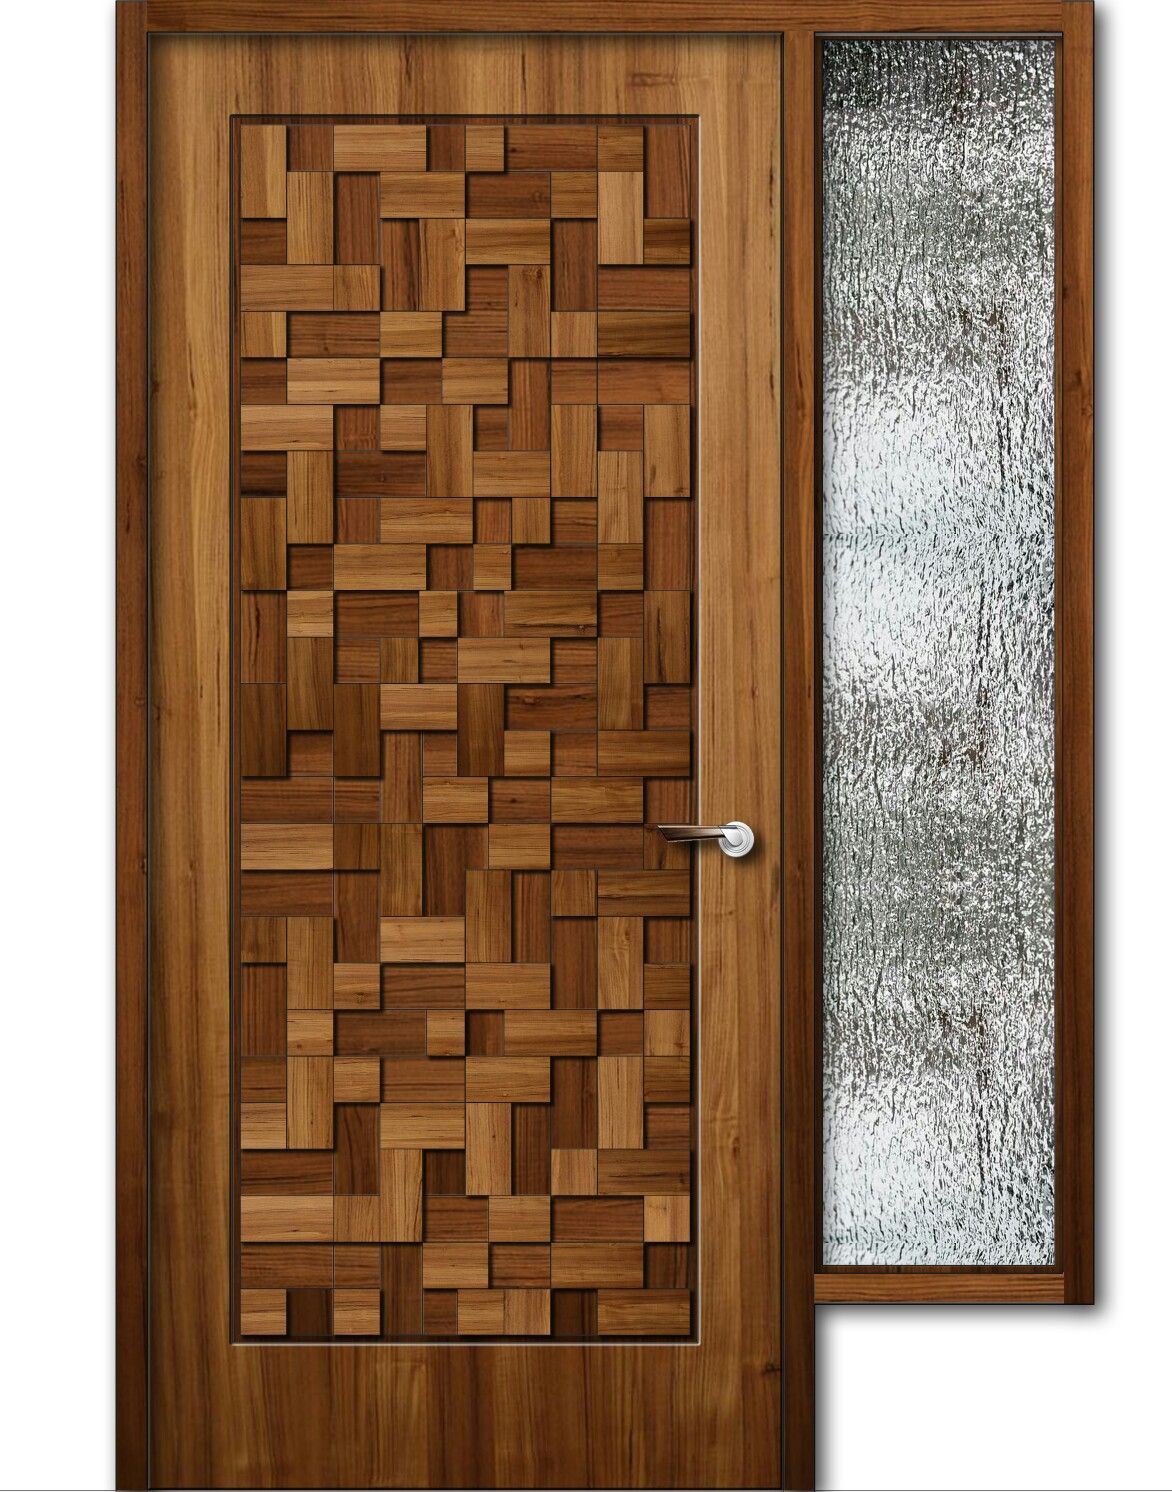 Teak wood finish wooden door with window, 8feet height ...